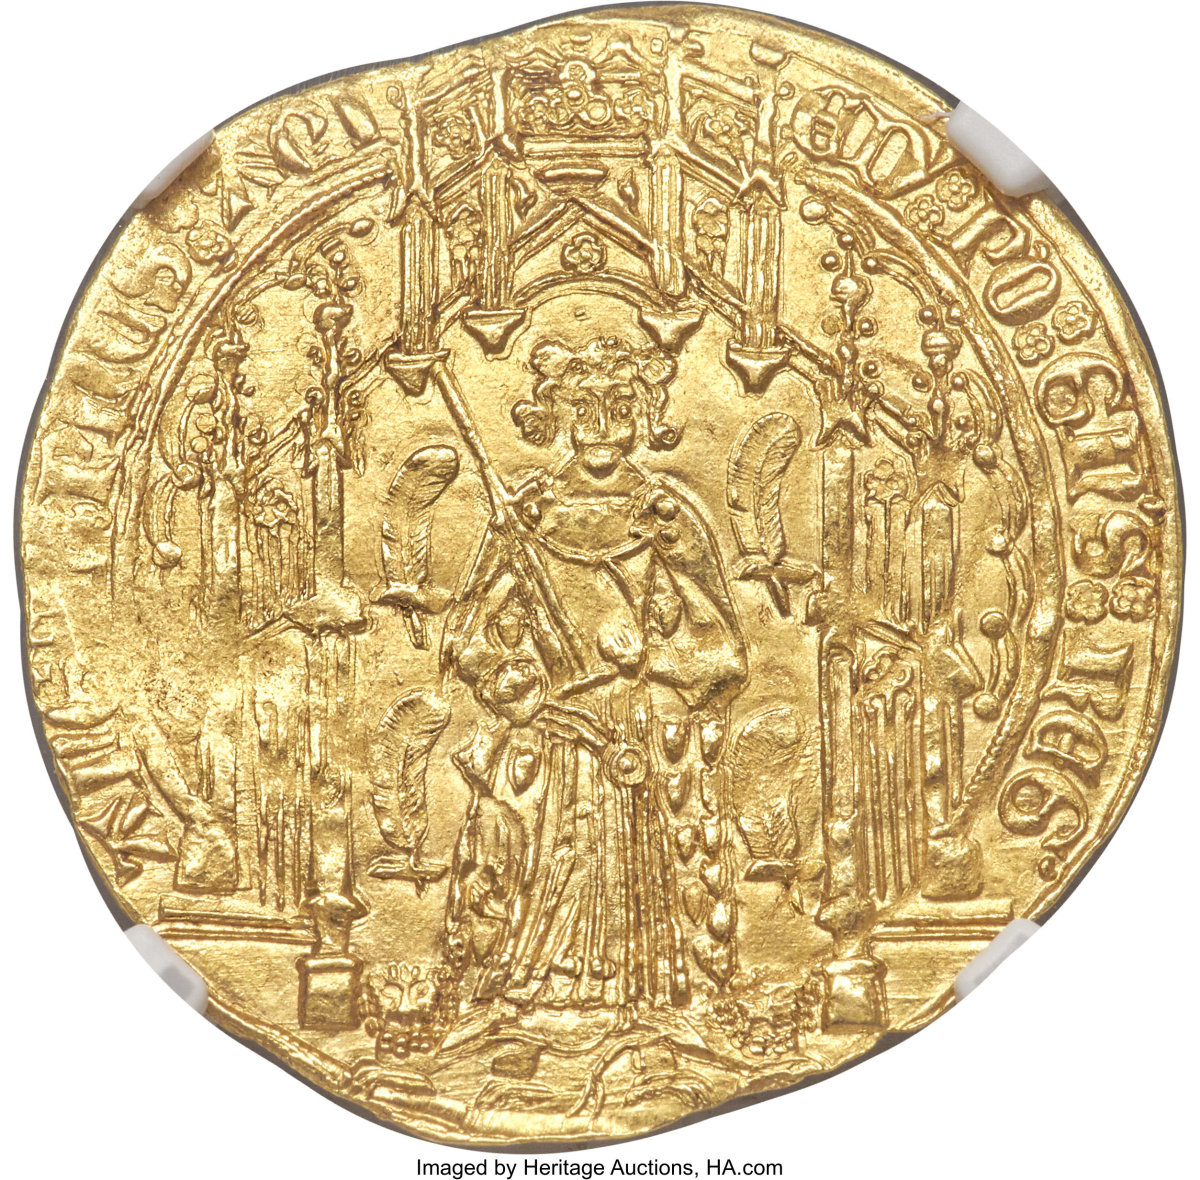 Anglo-Gallic hammered gold from The Hundred Year's War: obverse of superb pavilion d'or of Edward the Black Prince (1330-1376) that comes graded MS64 NGC. (Image courtesy Heritage Auctions.)